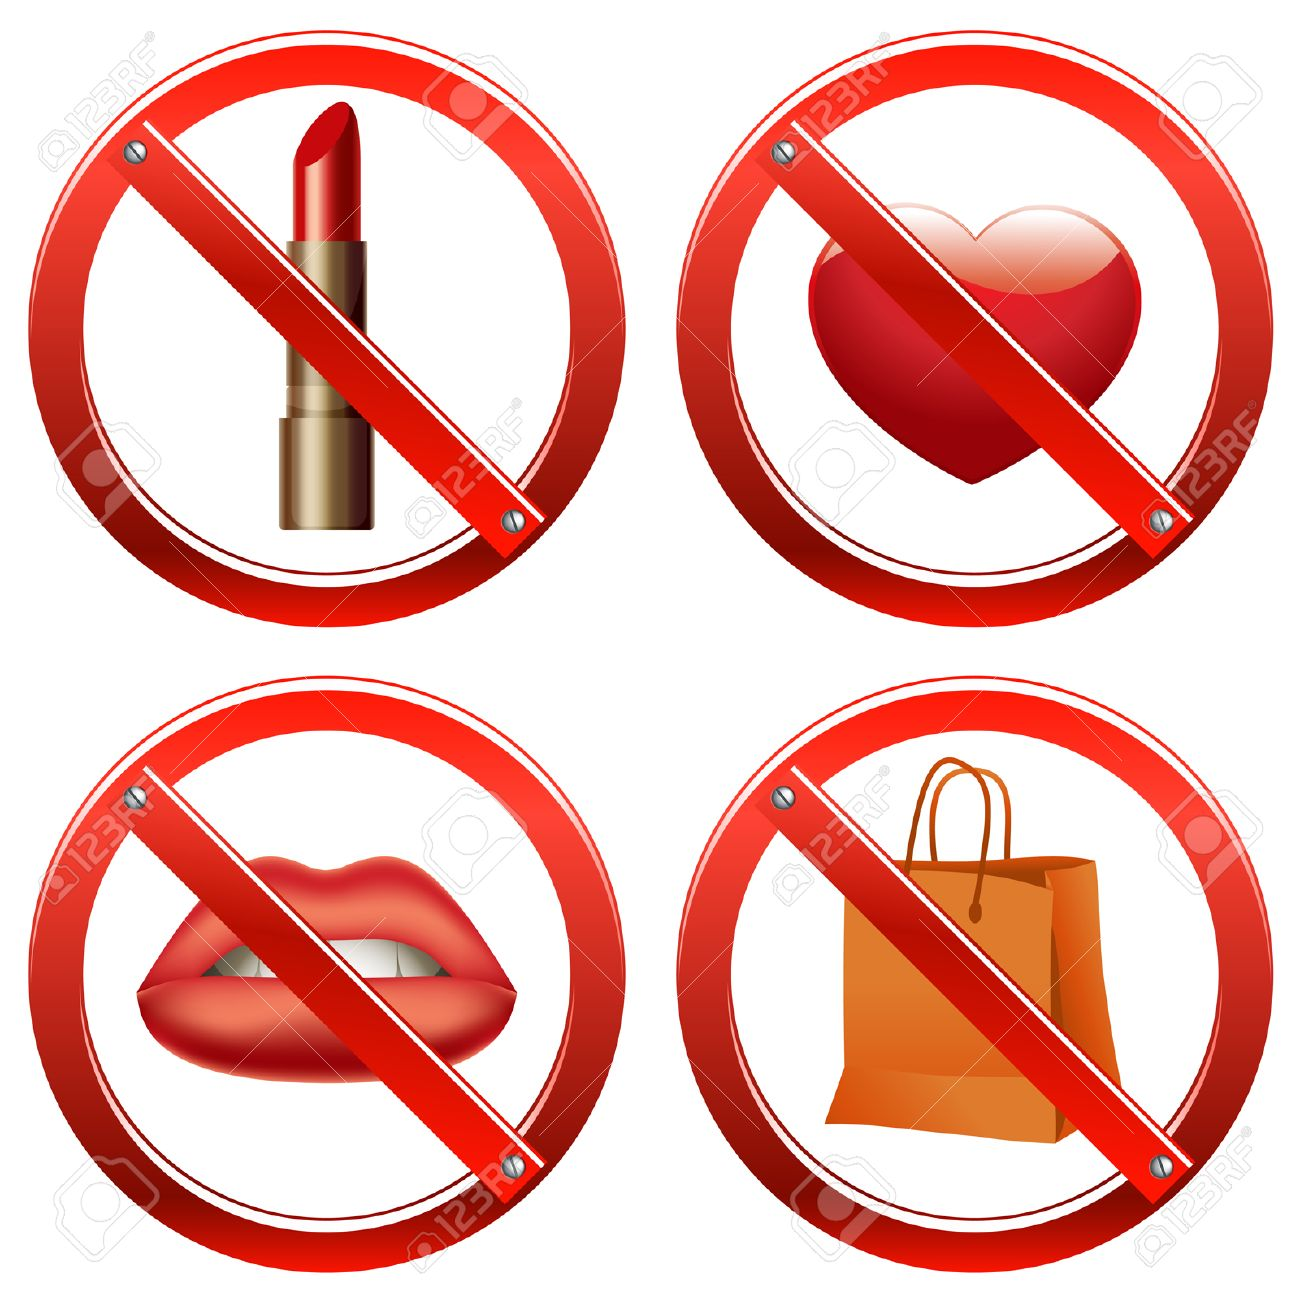 Set of signs banning a number of things like use of cosmetics, freedom of speech, manifestation of feelings, and shopping Stock Vector - 8067455